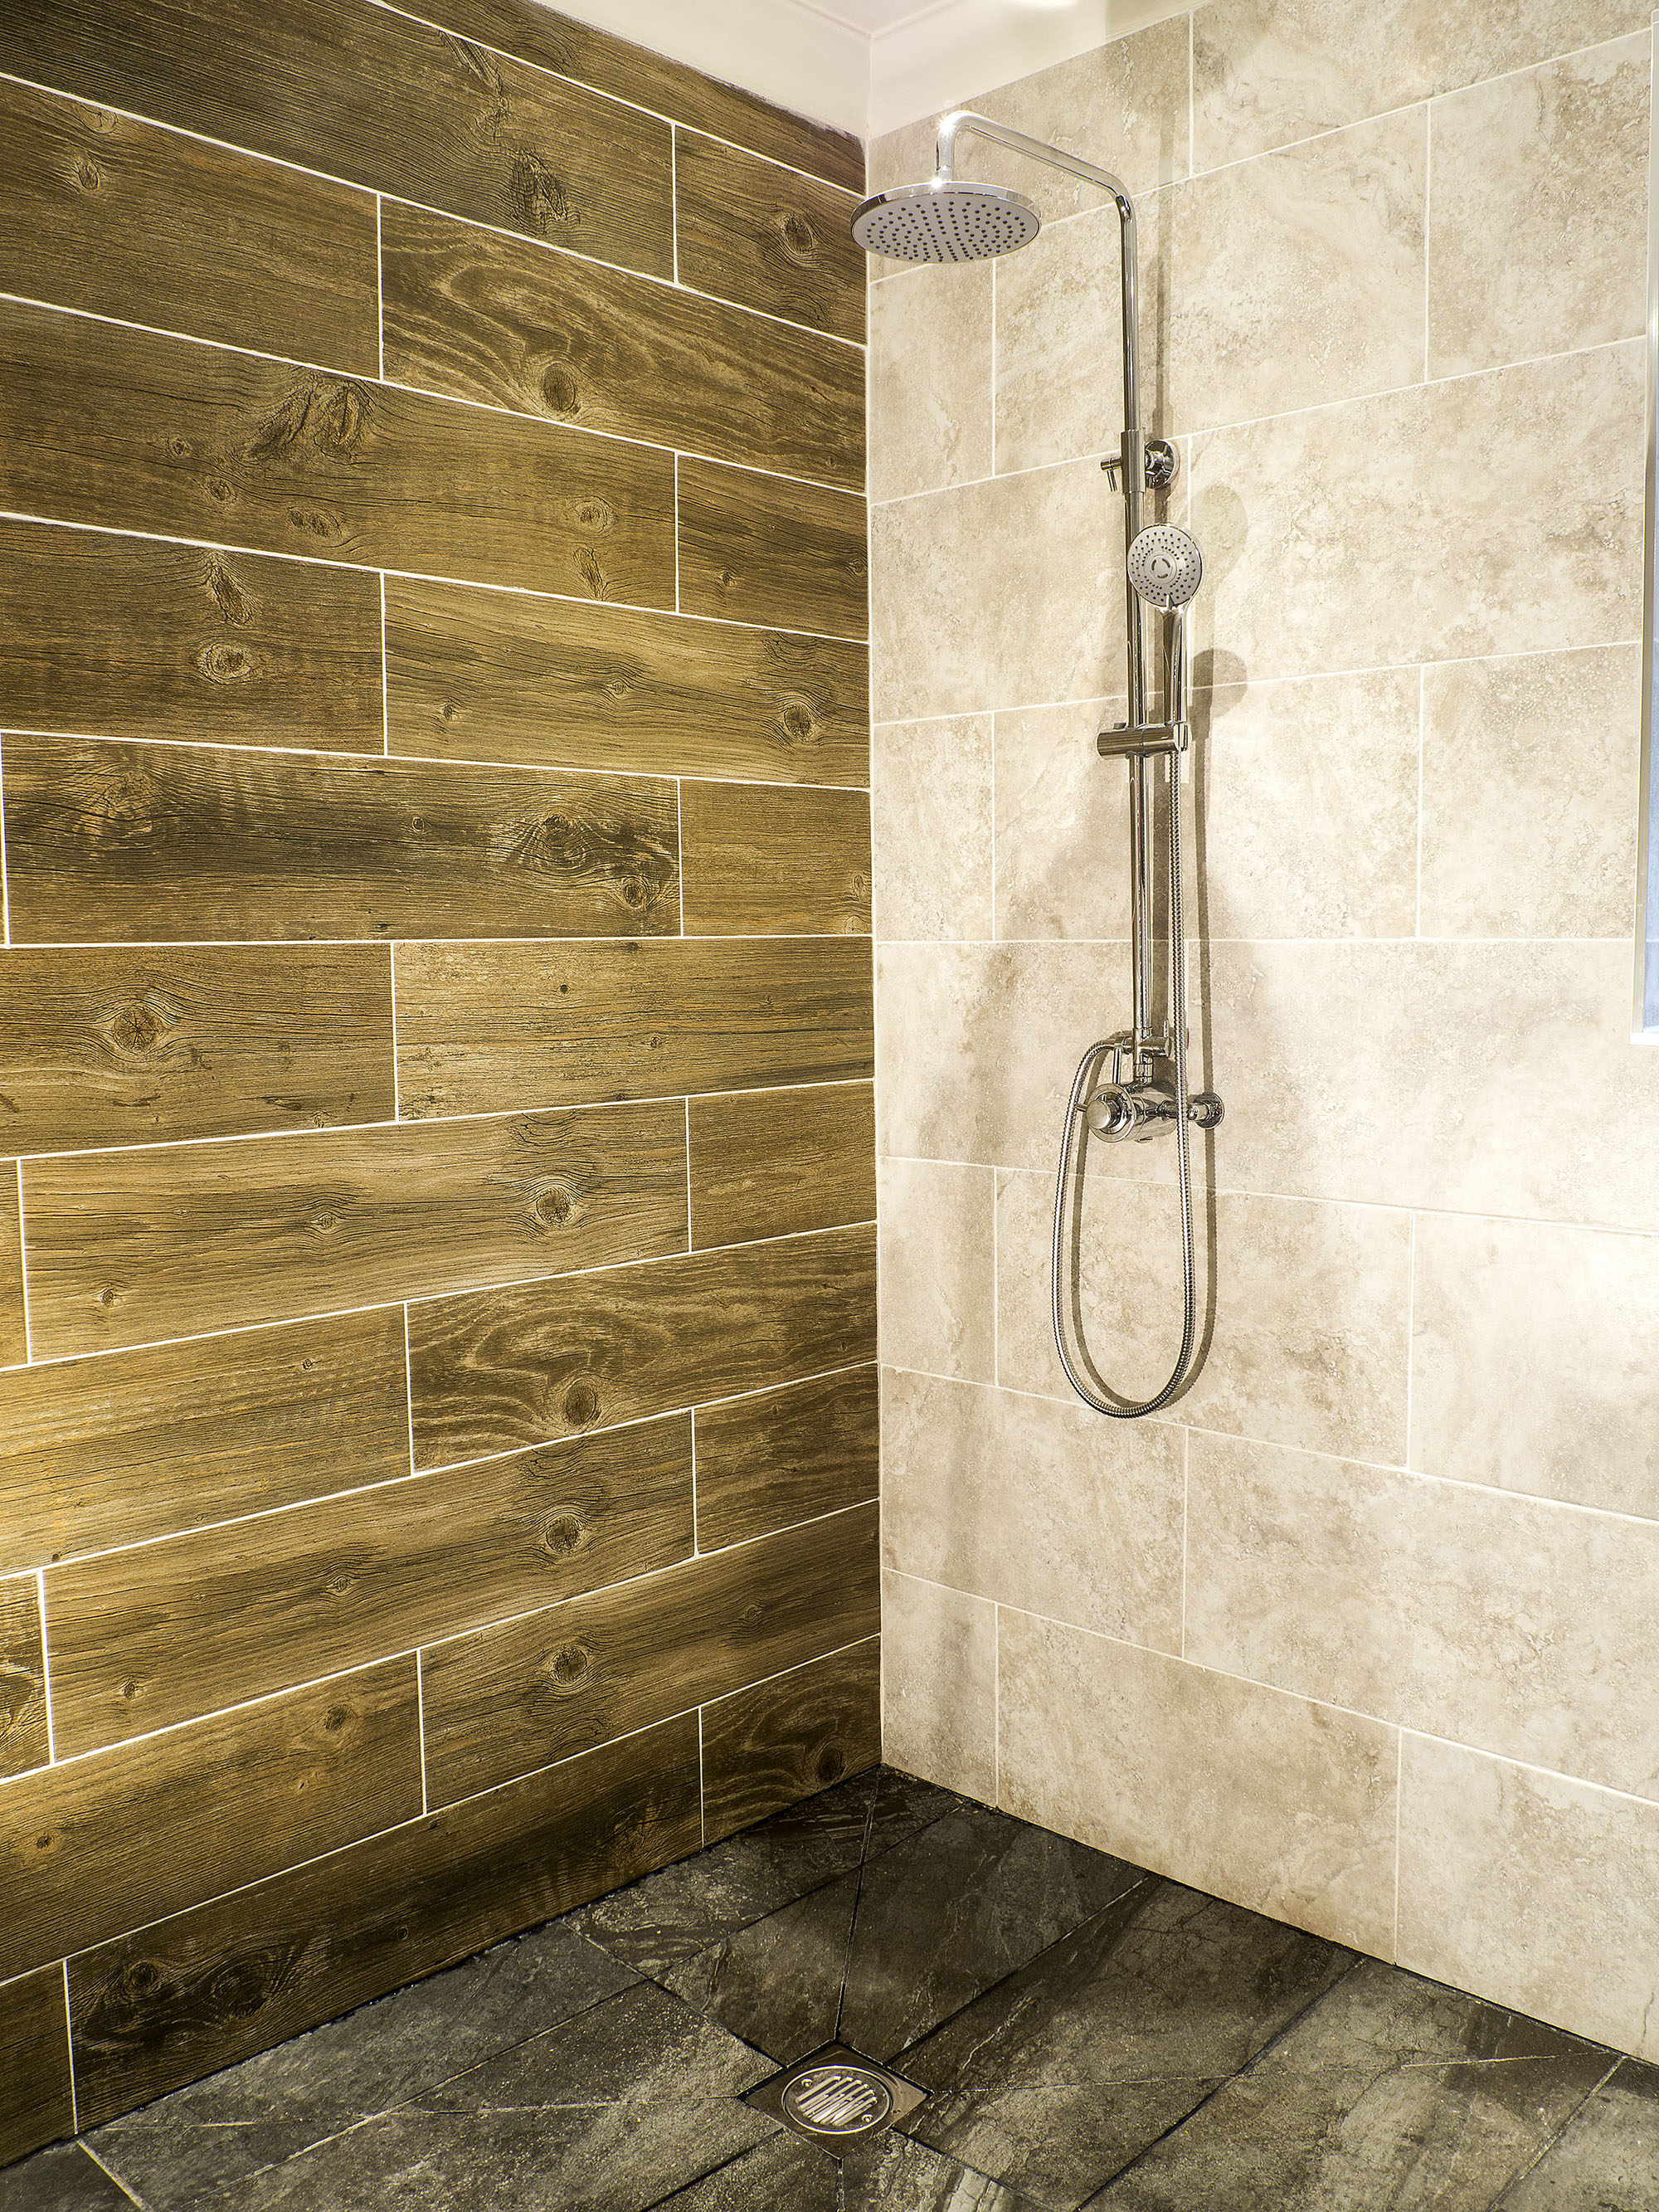 Apollo design wet room installations and bathroom design wet rooms dailygadgetfo Image collections